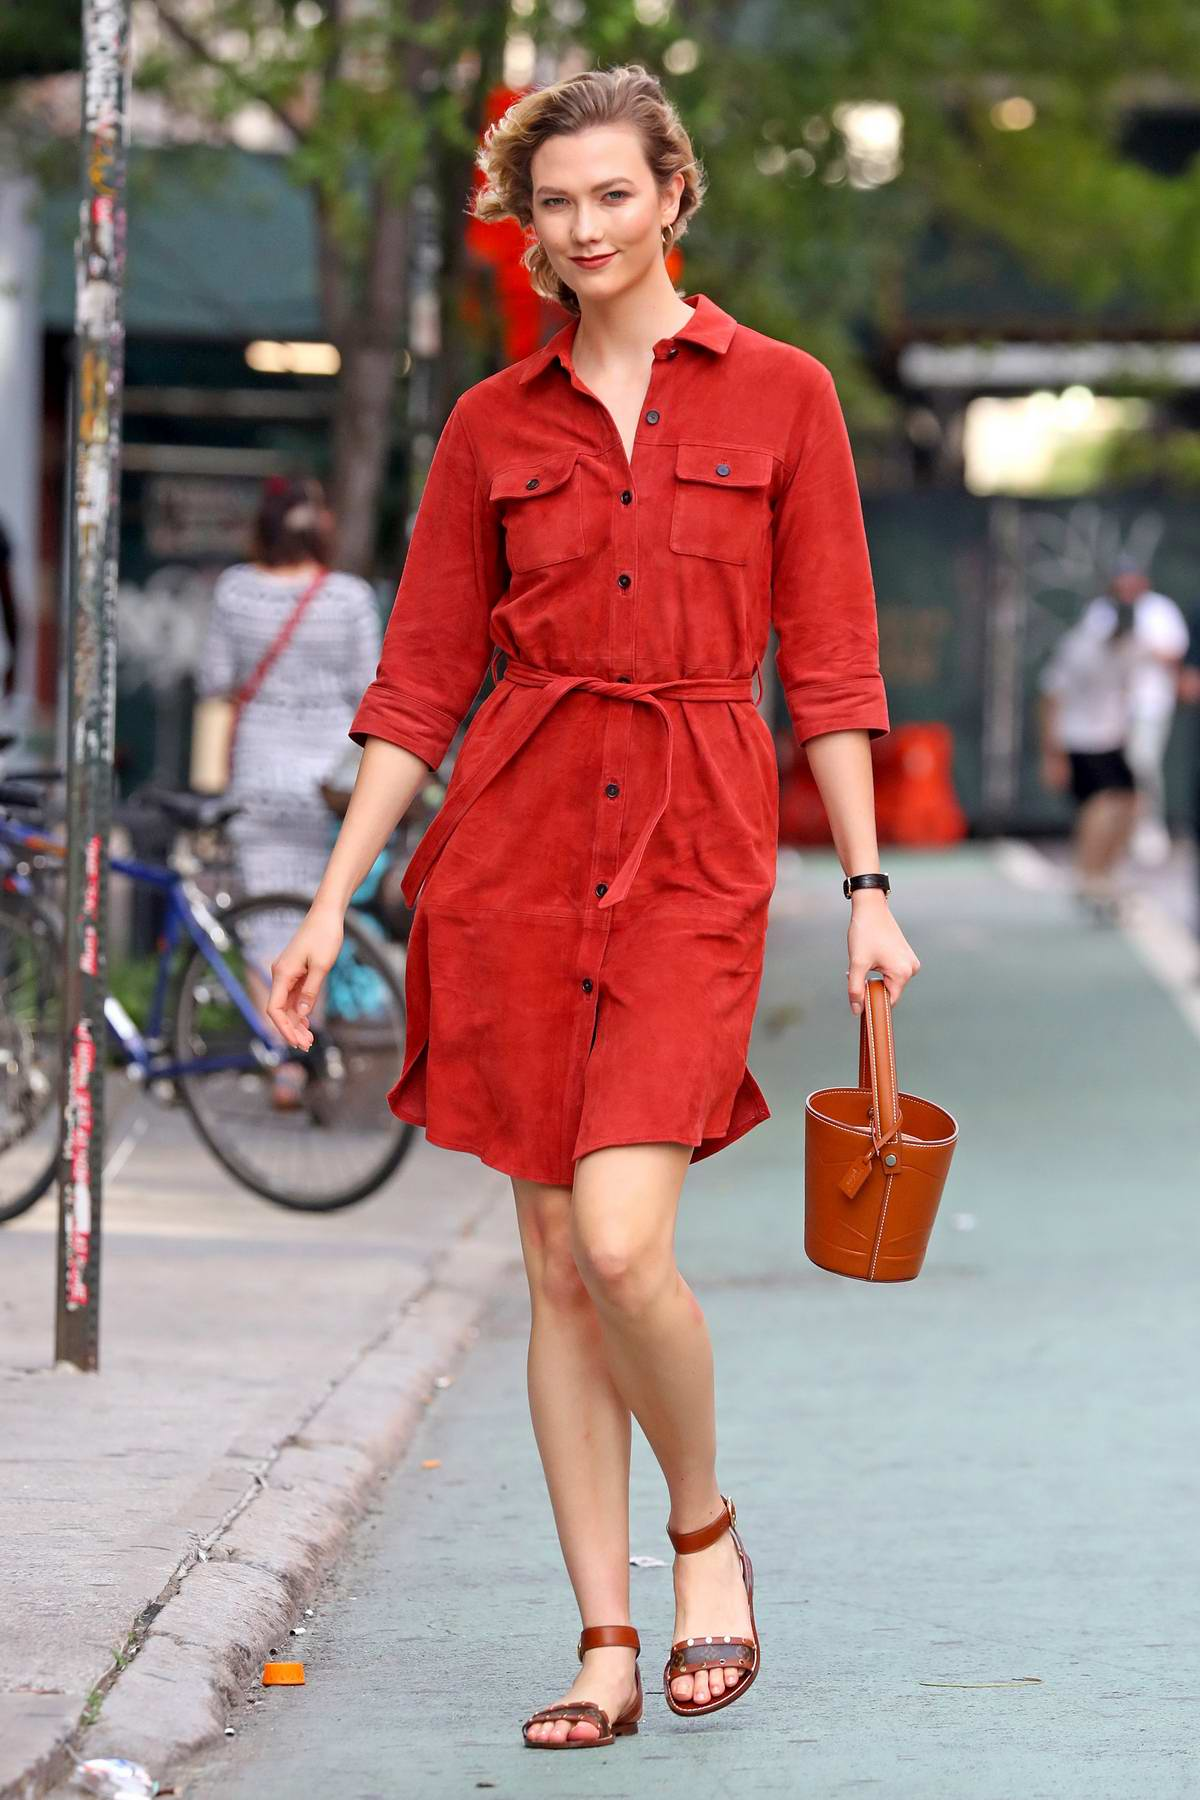 Karlie Kloss looks striking in a red button up dress and mini bucket bag in New York City